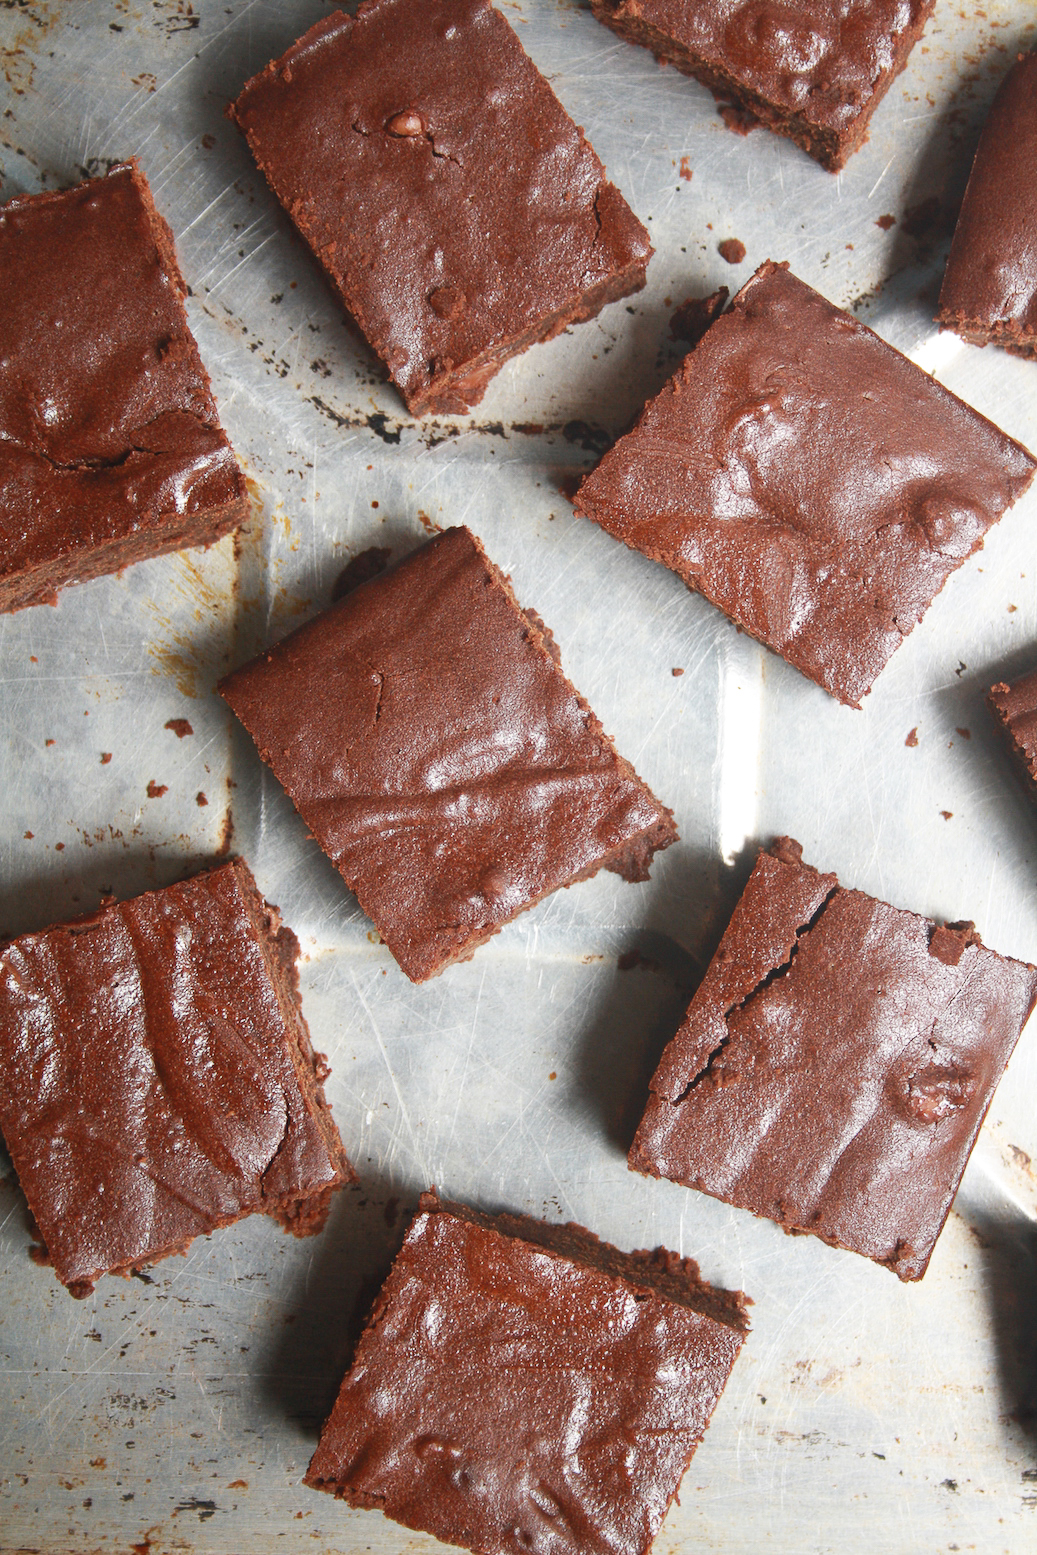 Chewy, fudgy brownies filled with stout and lots of chocolate!